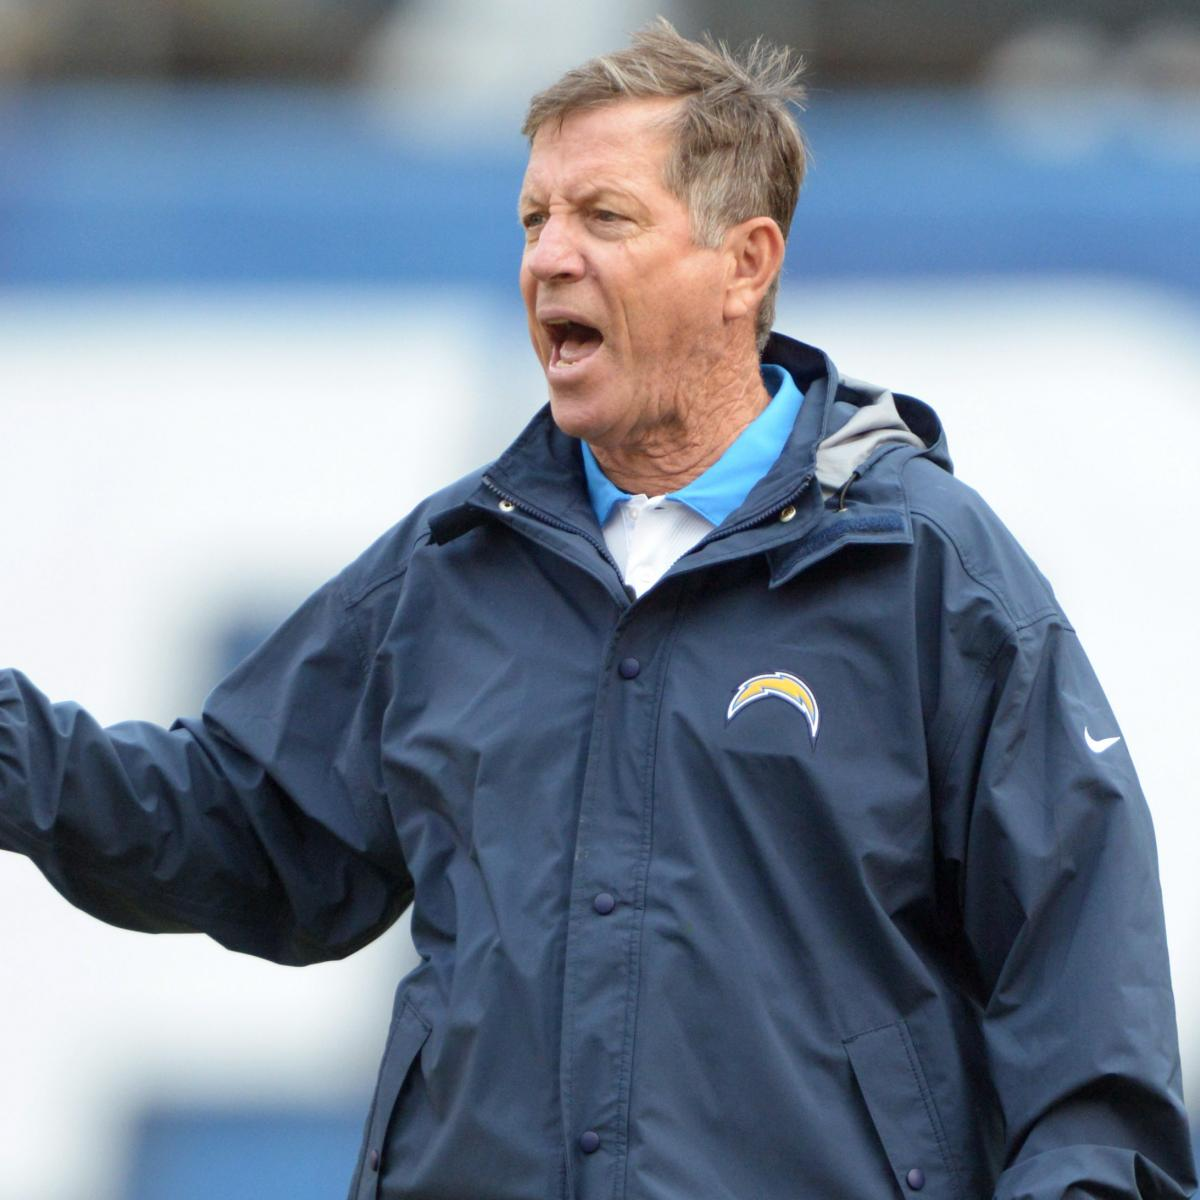 San Diego Chargers Coaching Staff: The Most Important Coaching Staff Signings You Aren't